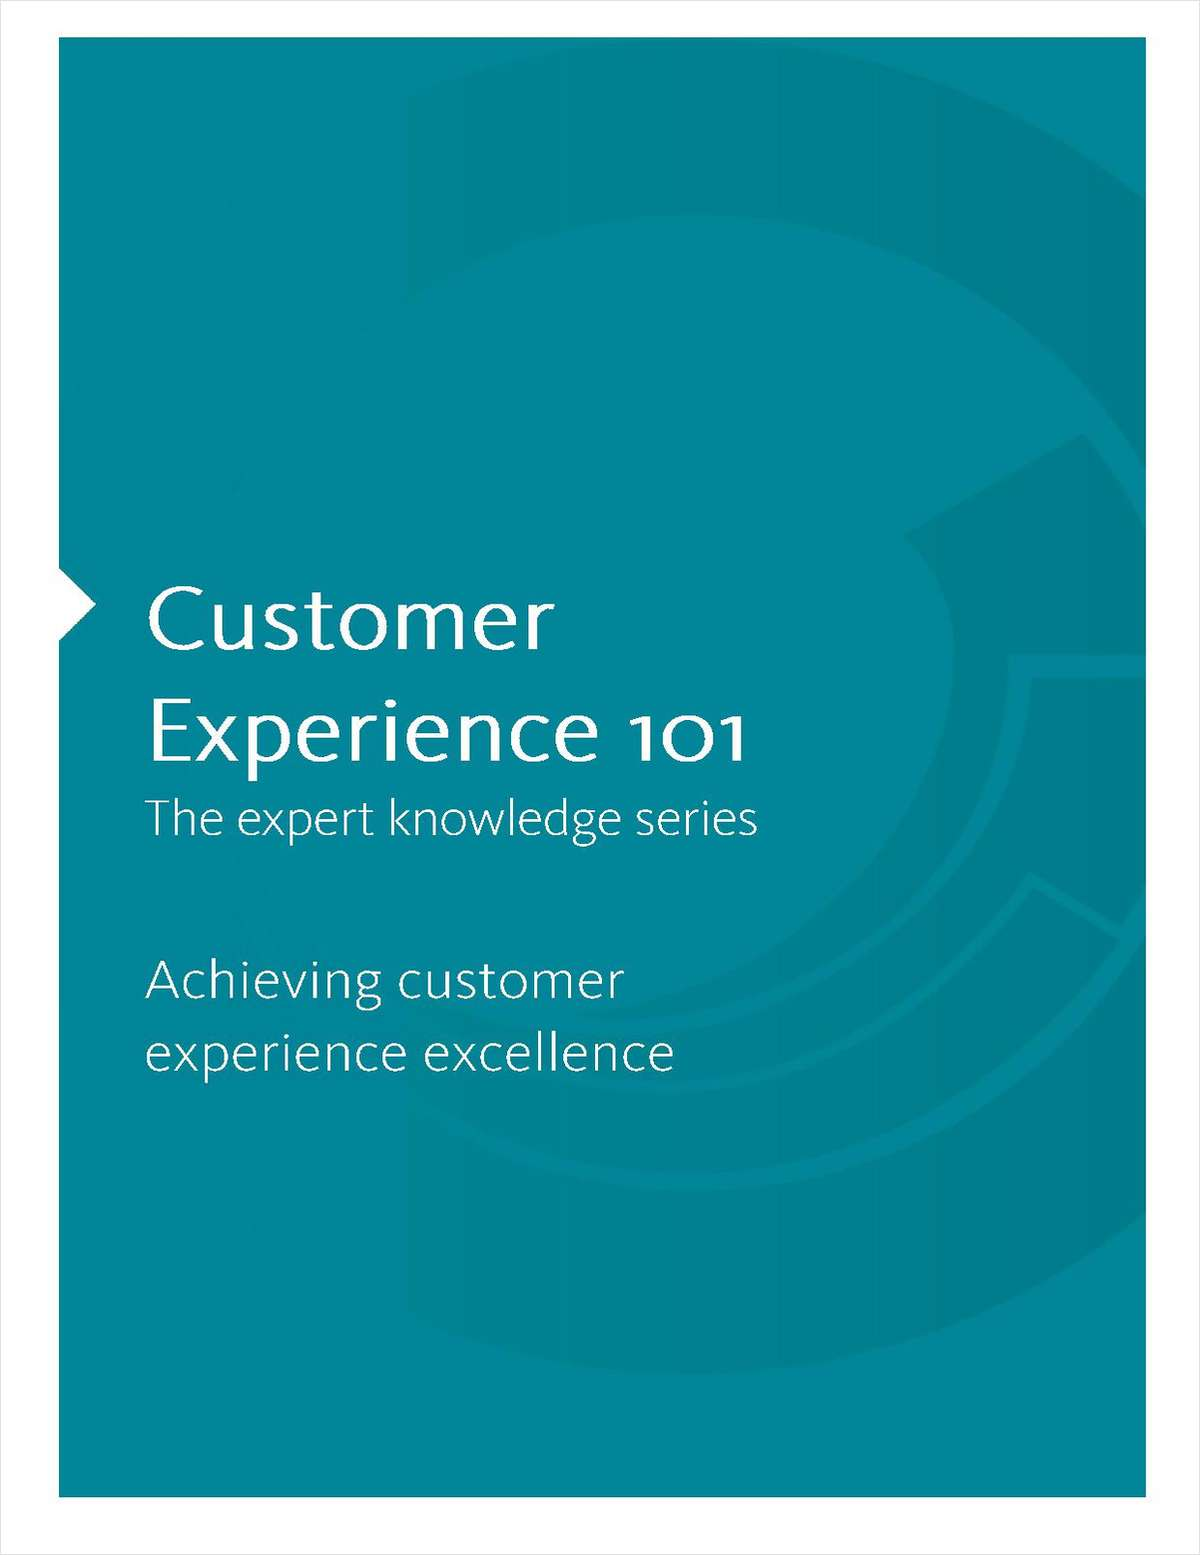 Achieving Customer Experience Excellence